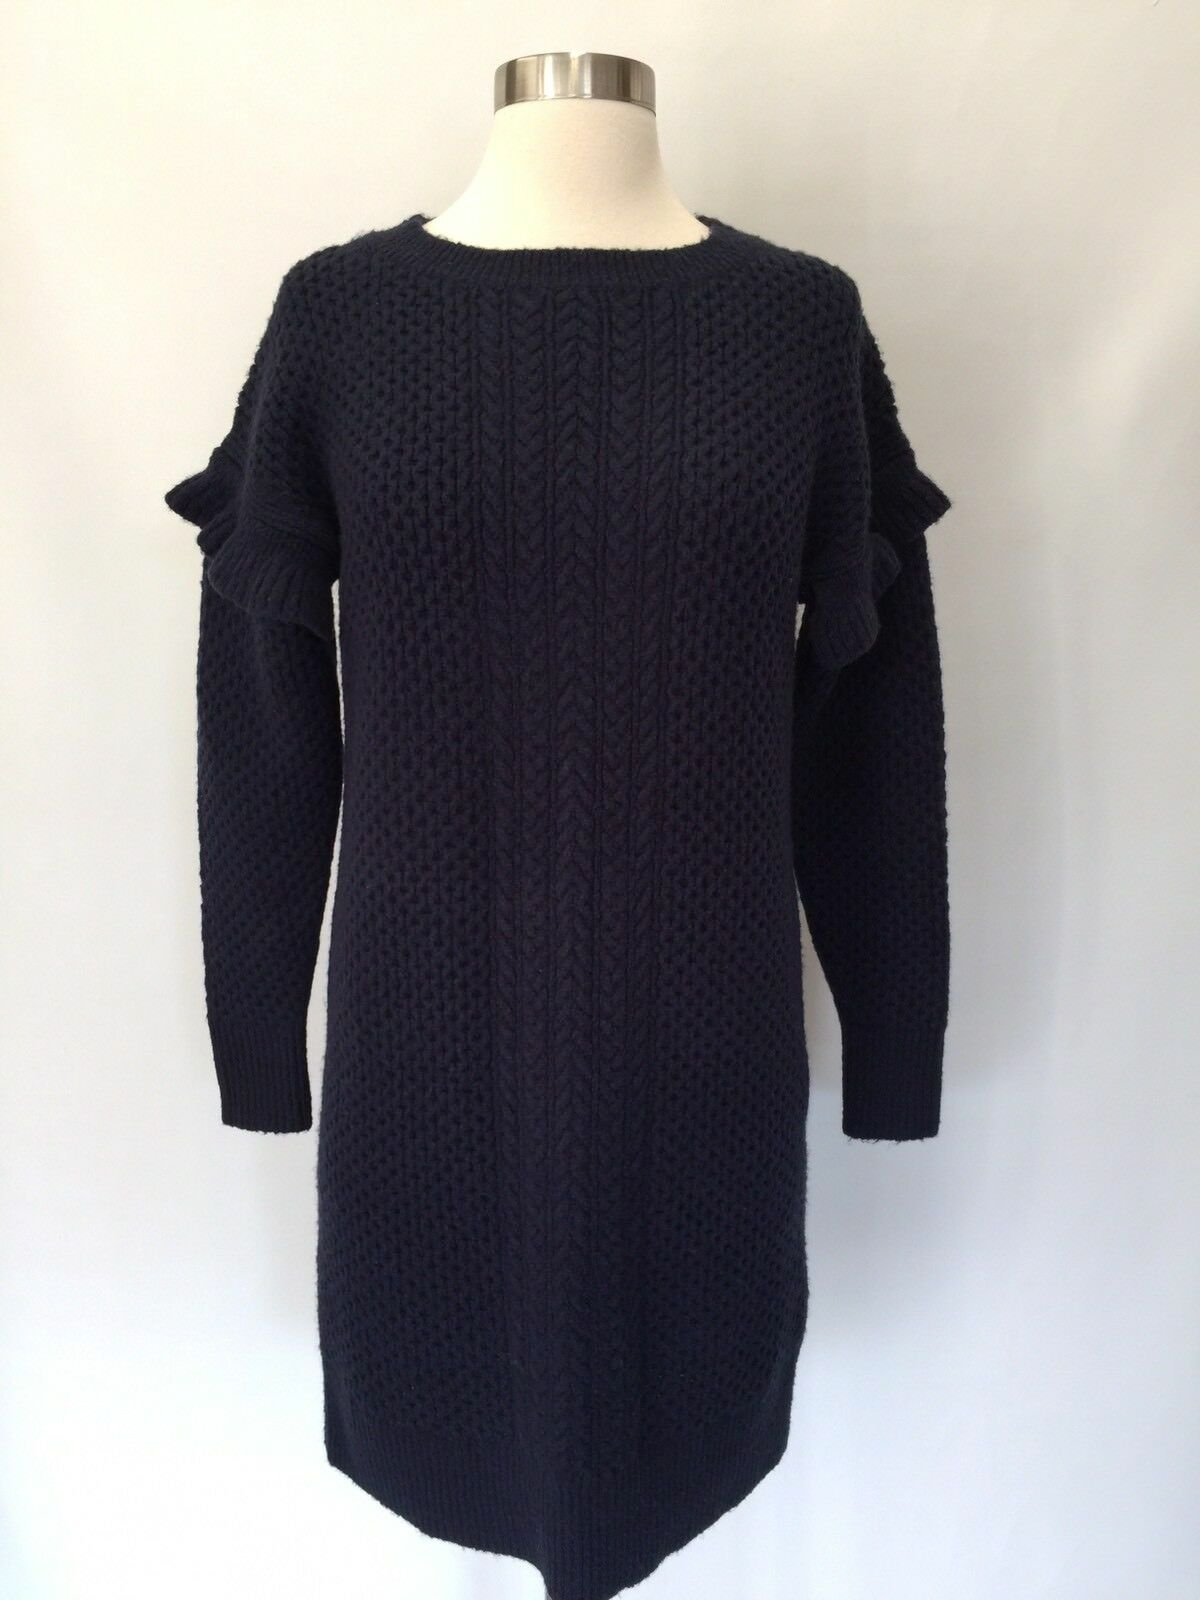 J J J Crew Cable-knit ruffle-sleeve sweater-dress Navy bluee Size XS H2478 2d69bd